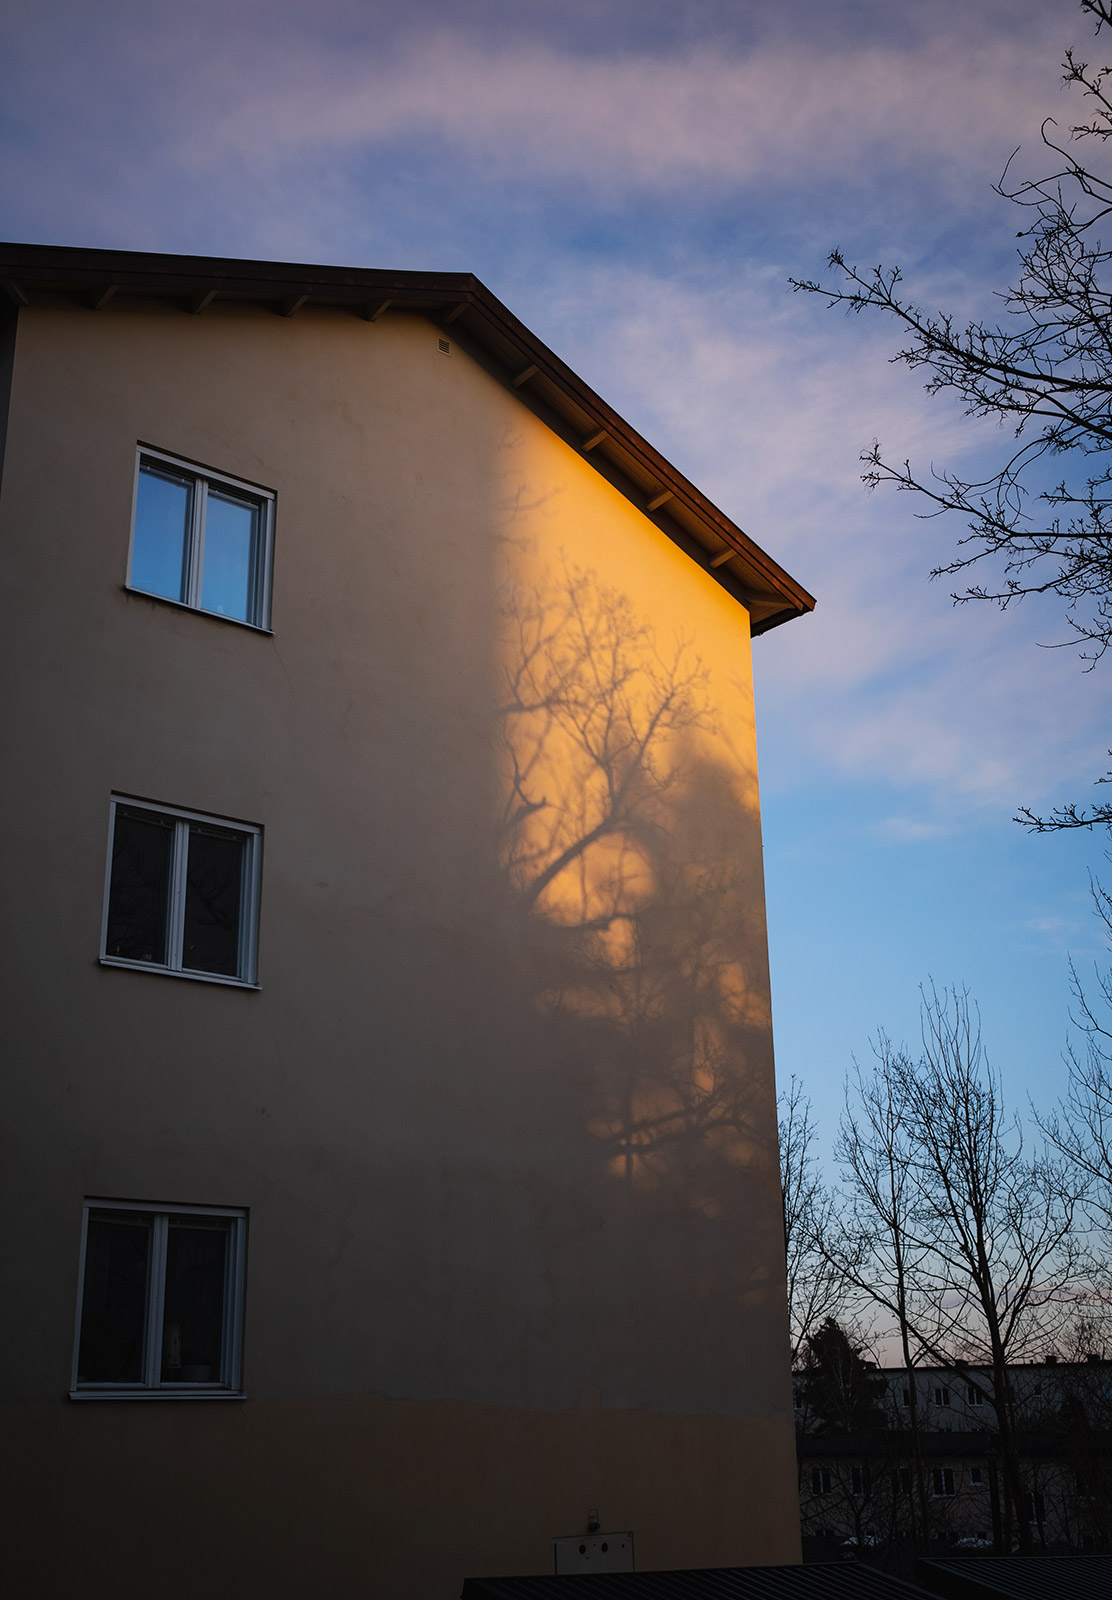 Brand silhouette on building